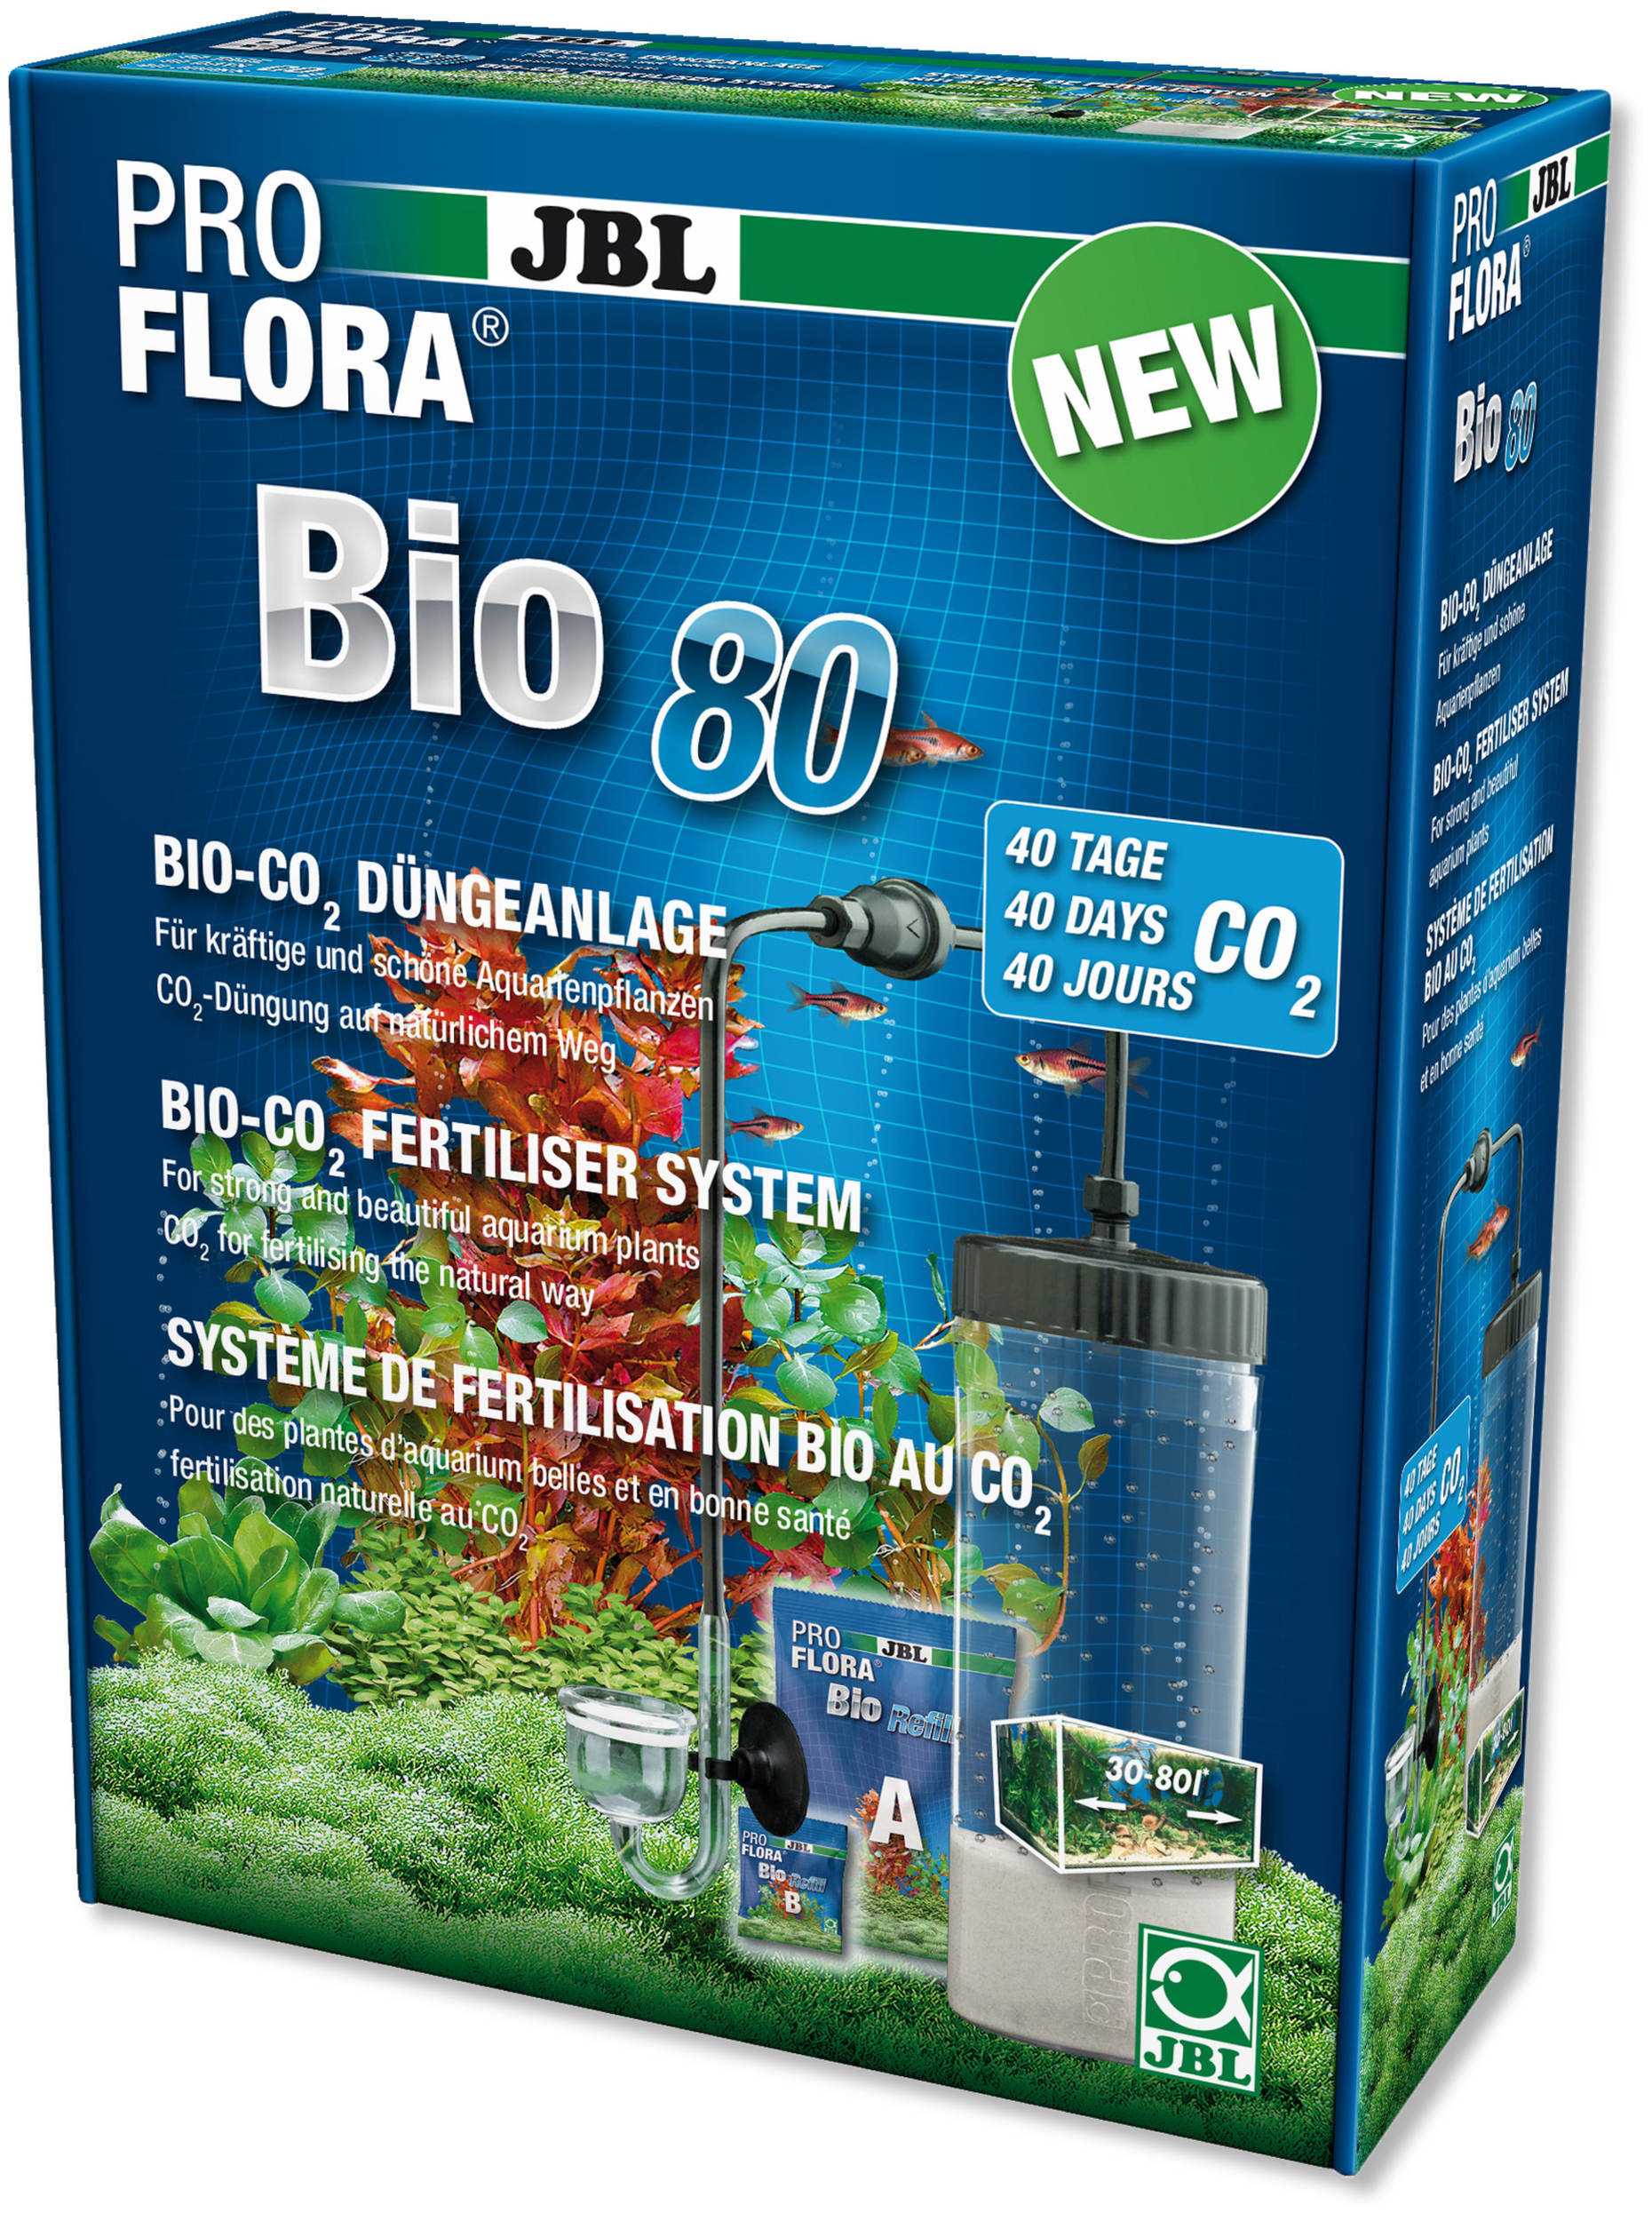 jbl-proflora-bio-80-kit-co2-aquarium